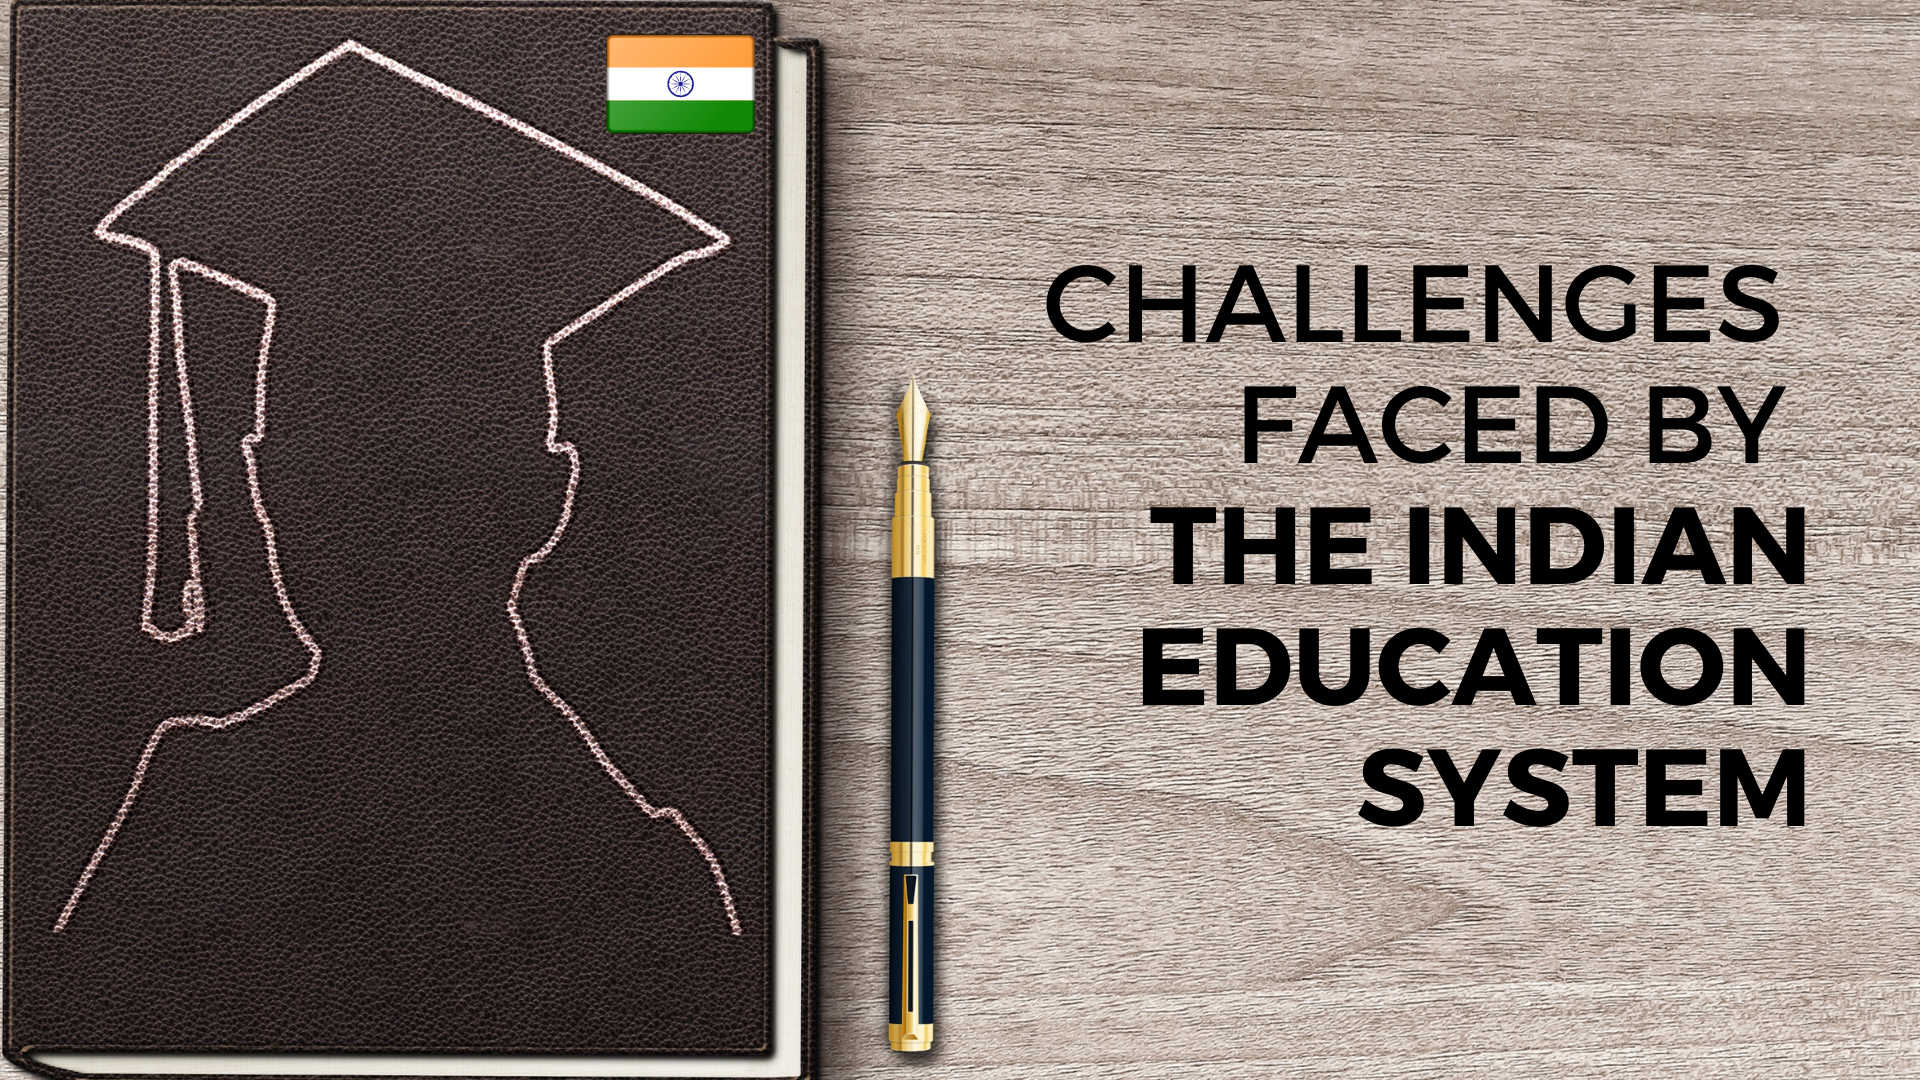 Higher Education in India – Top Challenges Faced